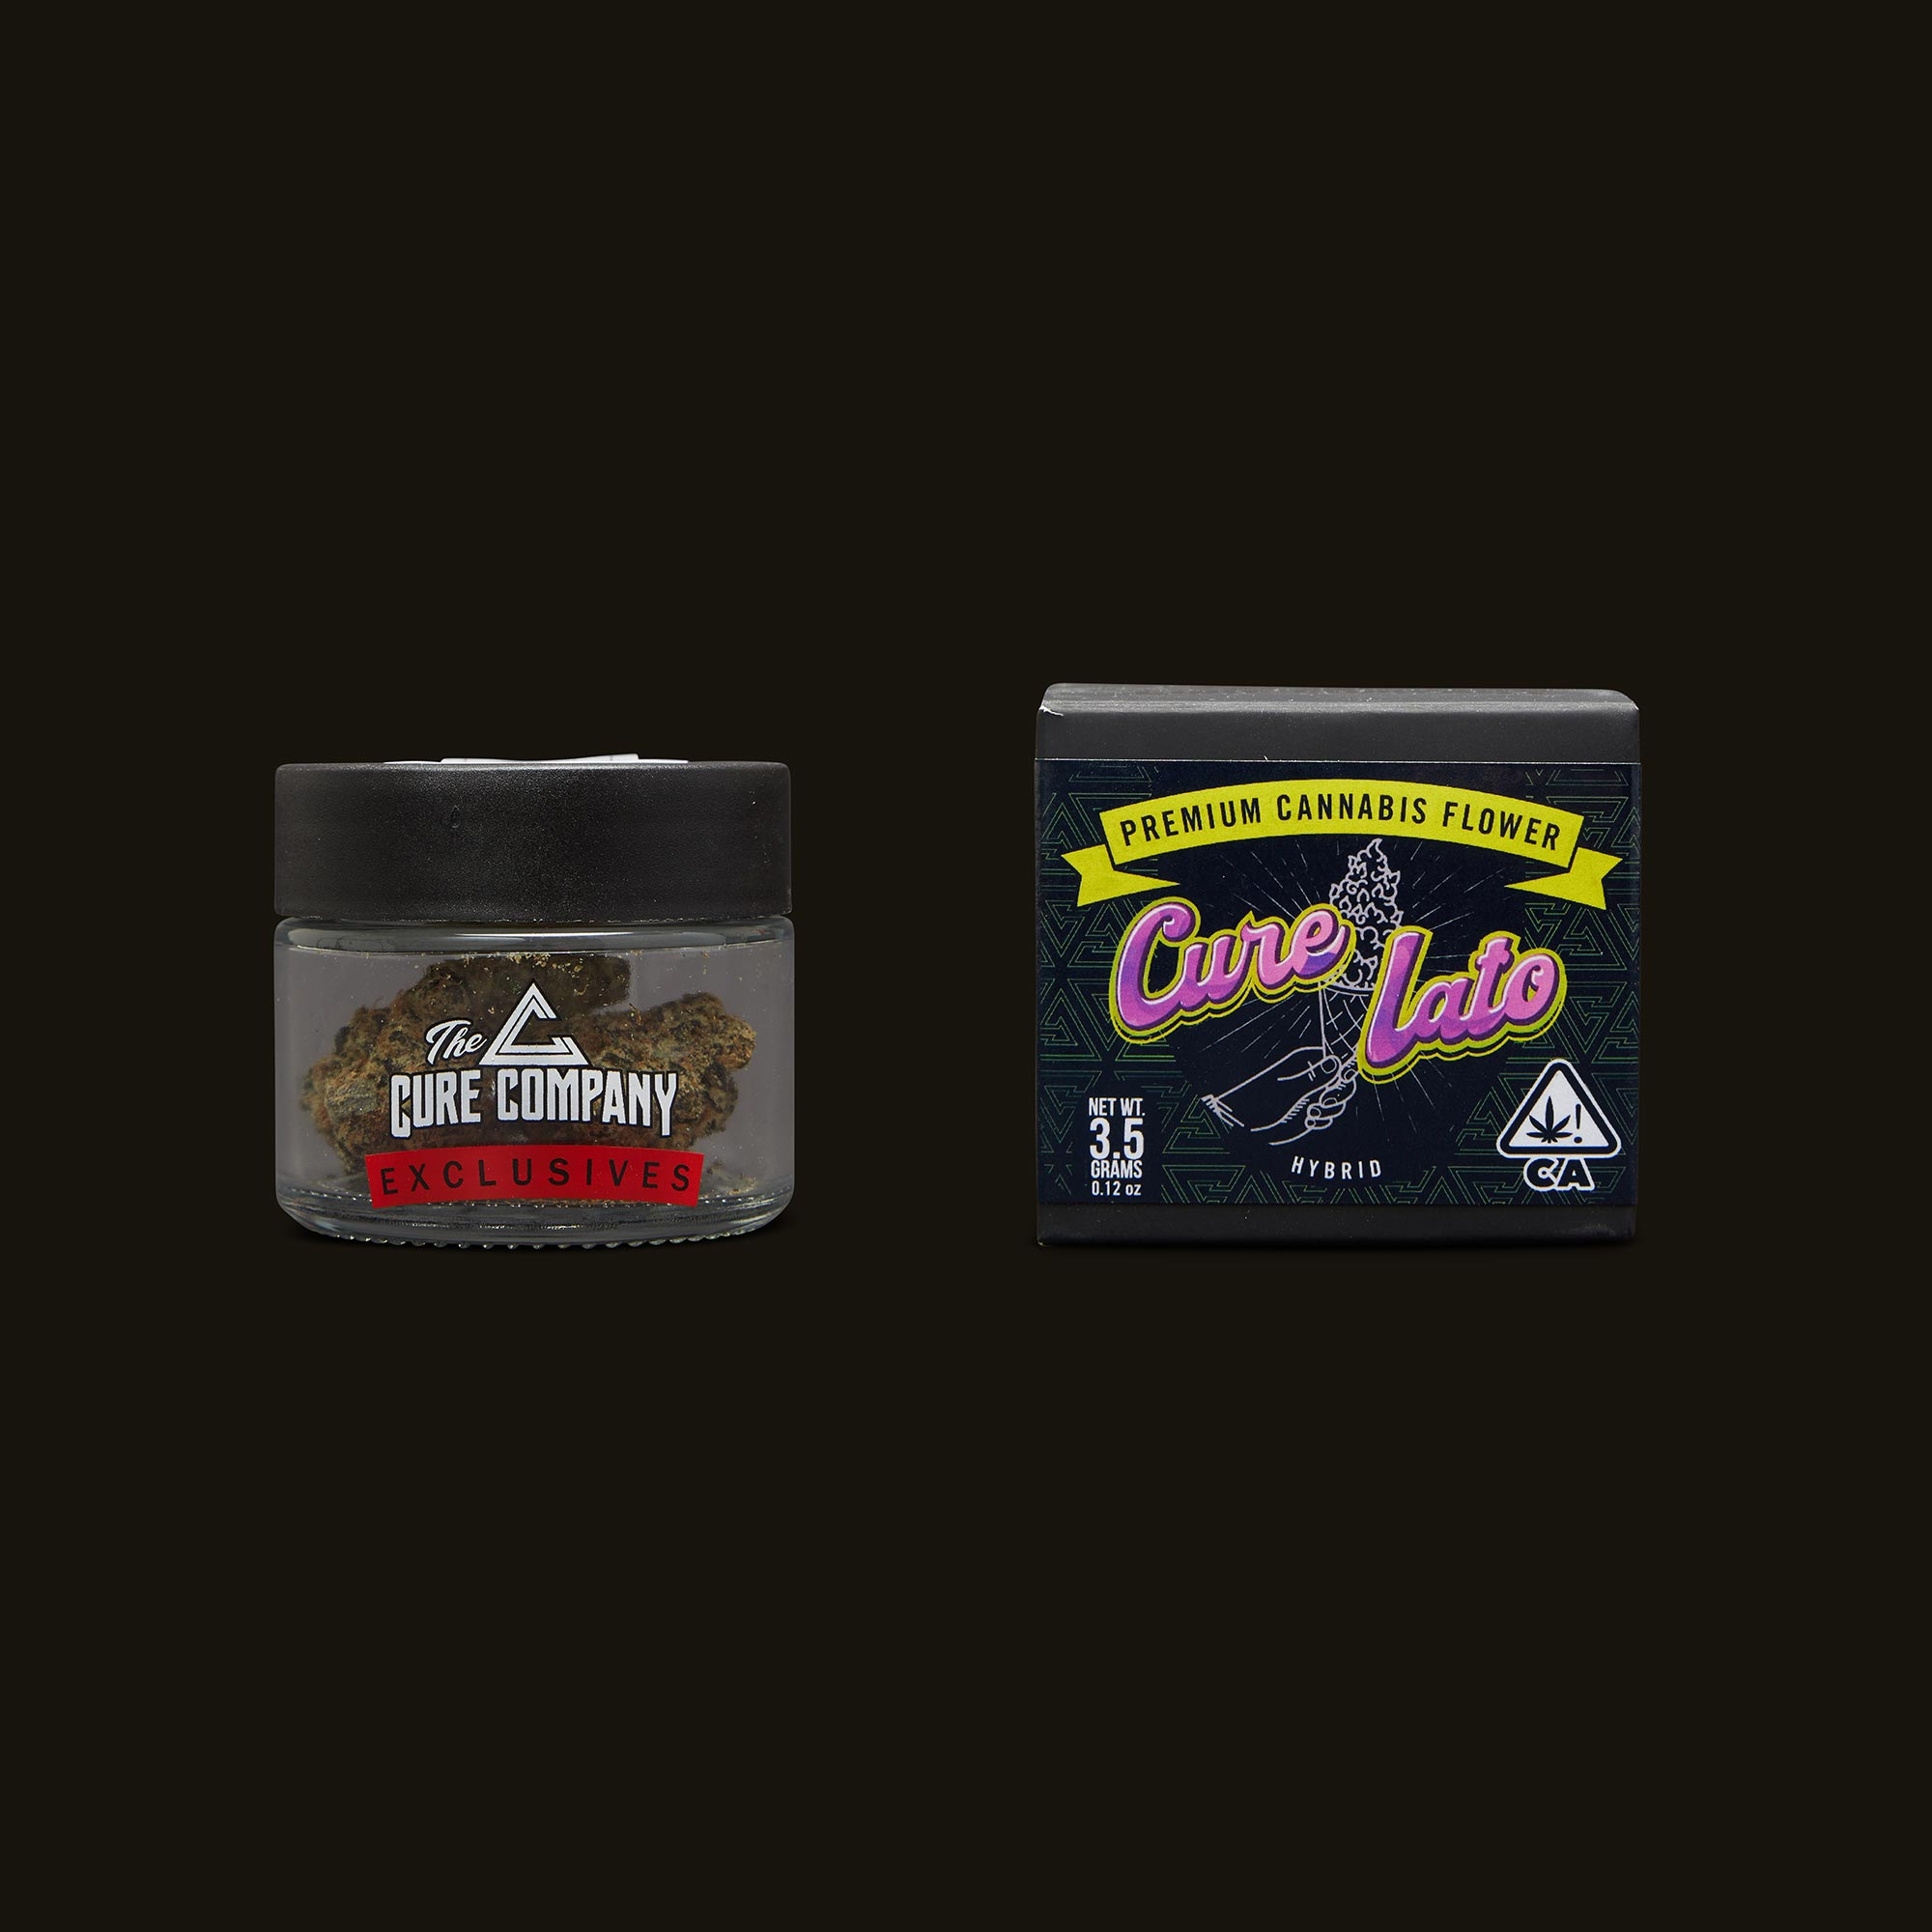 The Cure Company Curelato Jar and Packaging